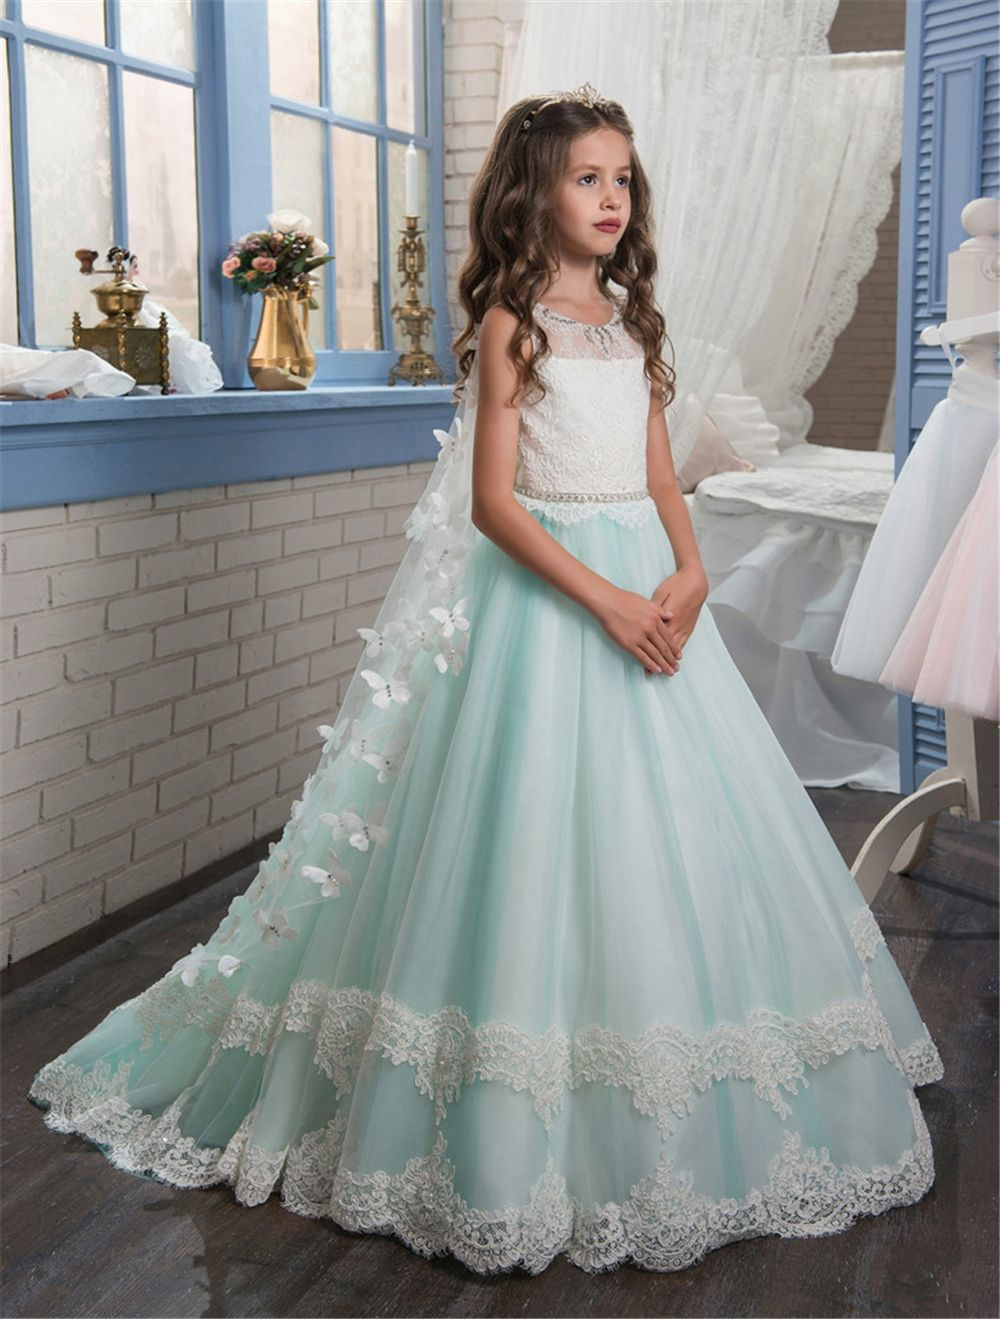 New wedding princess butterfly cape lace girls dress 2017 green ...